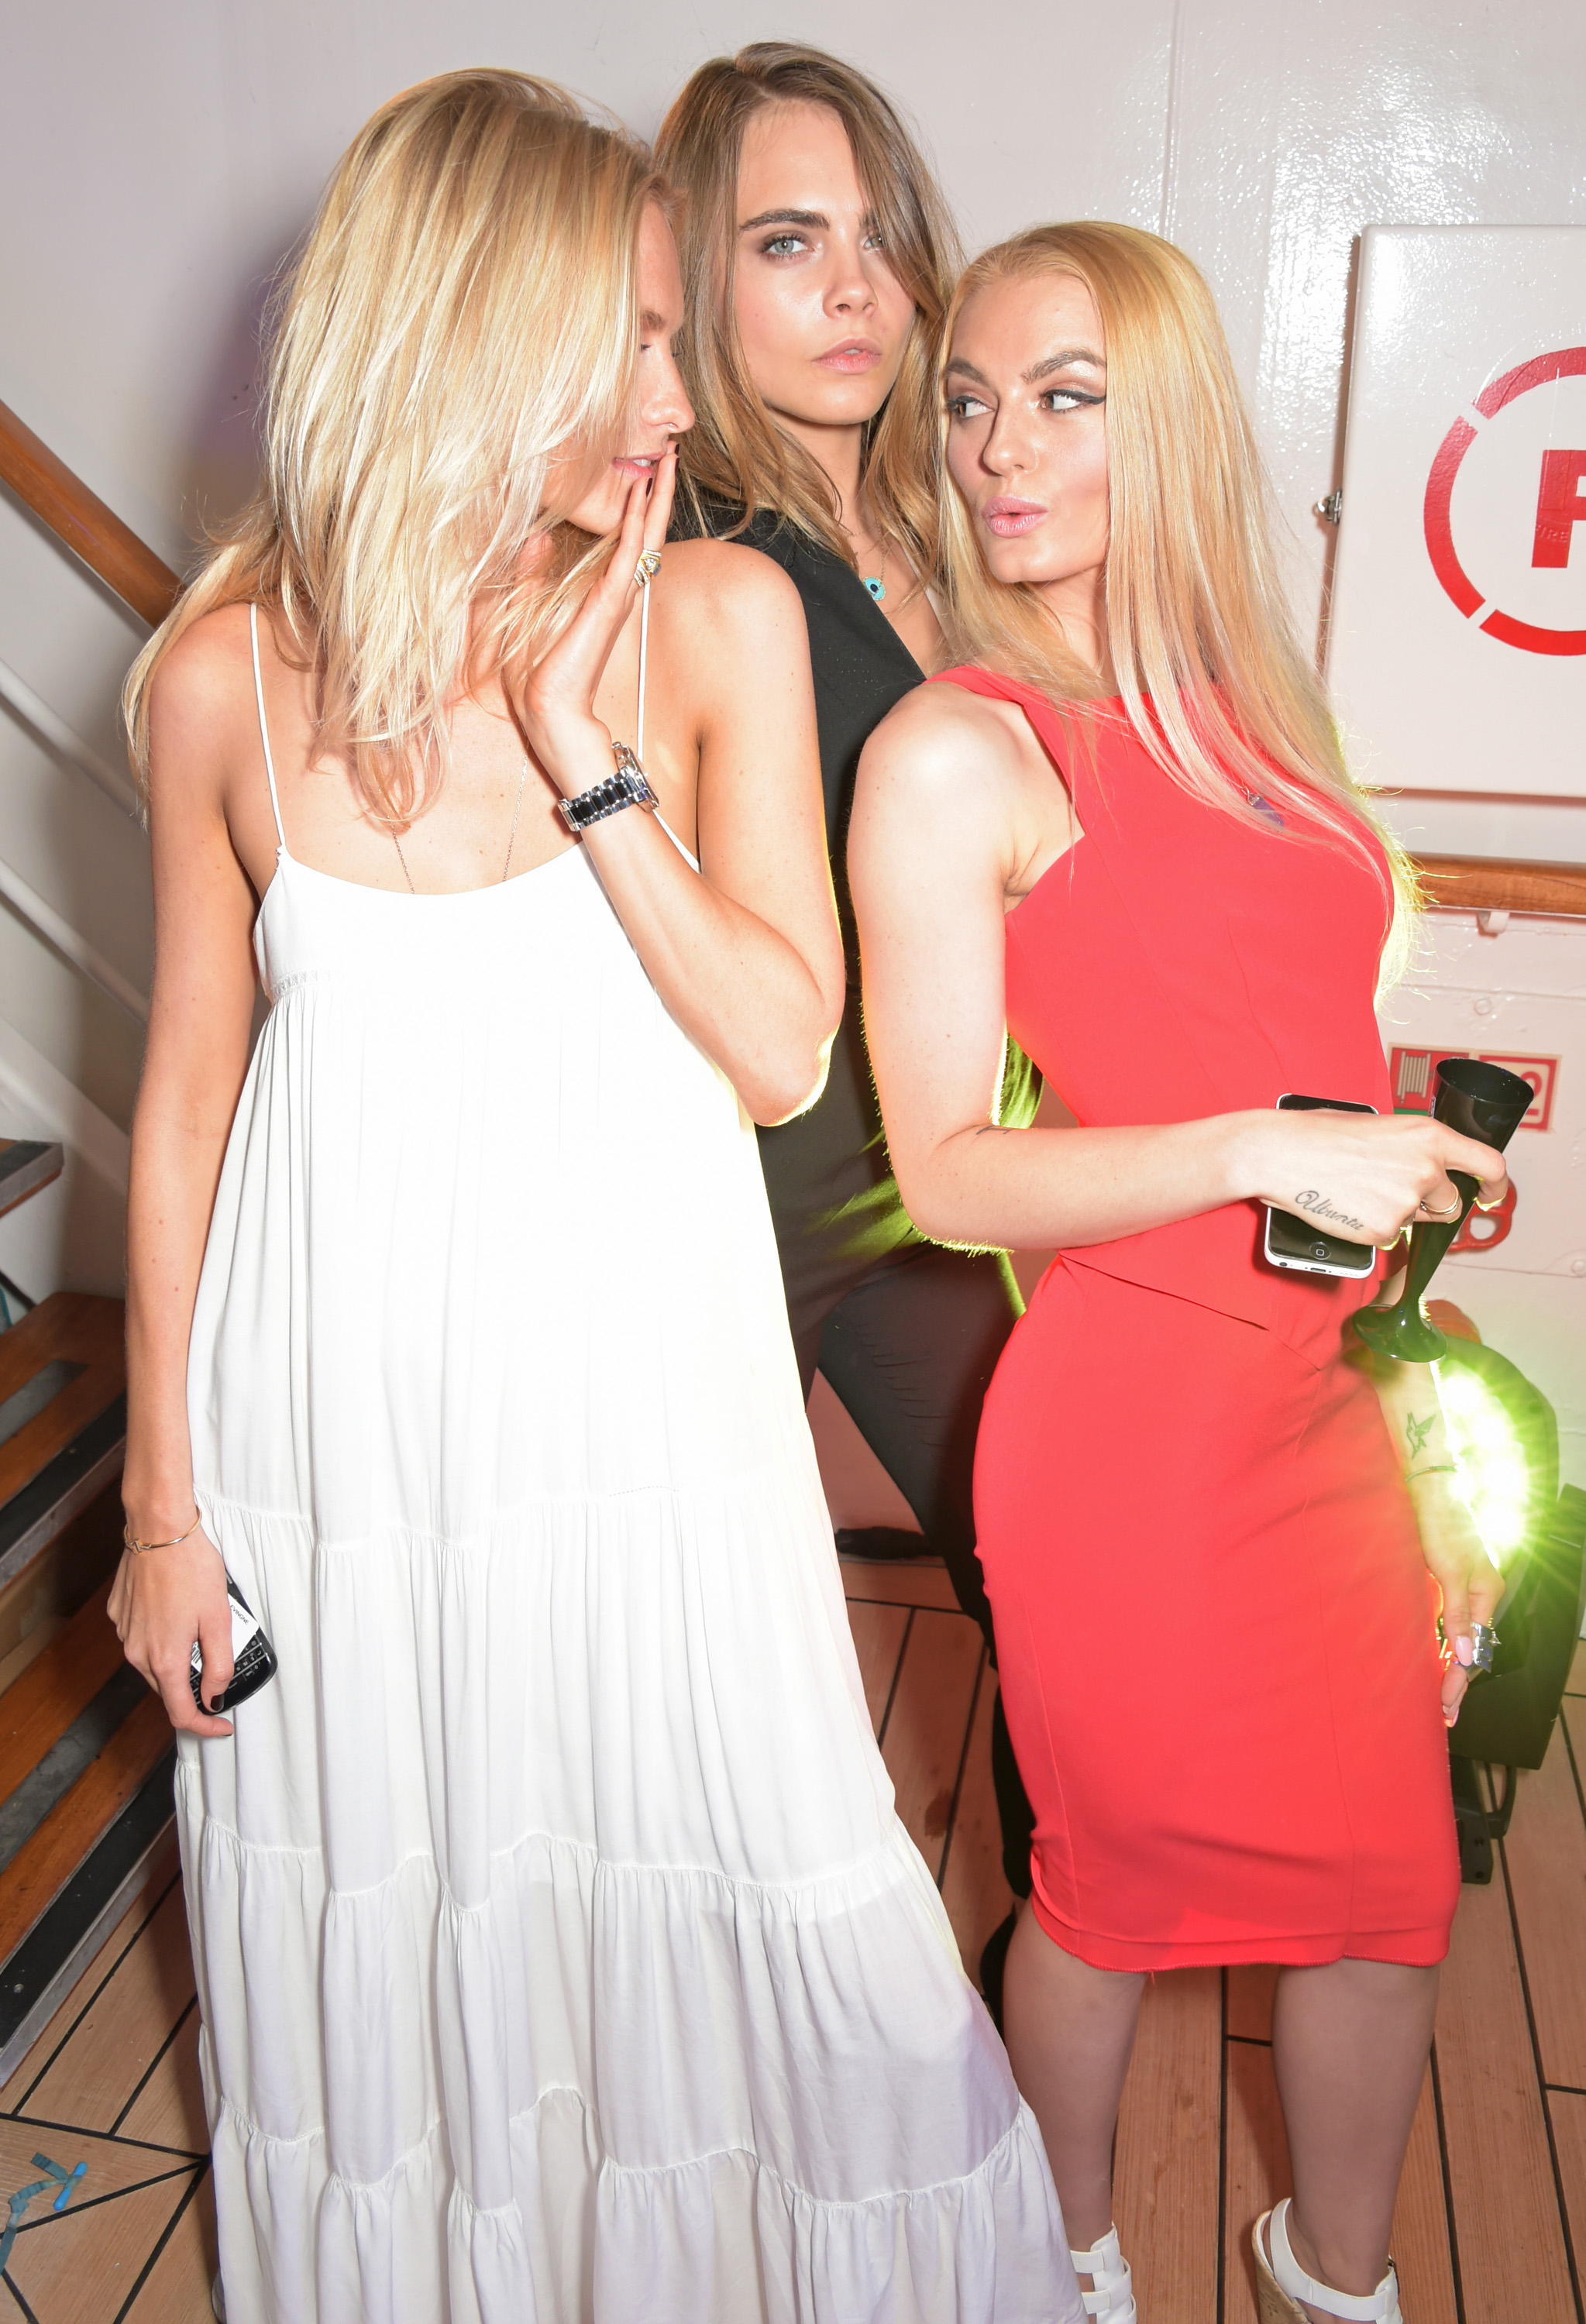 MONACO - MAY 23:  (L to R) Poppy Delevingne, Cara Delevingne and guest attend the TAG Heuer Monaco Party on May 23, 2015 in Monaco, Monaco.  (Photo by David M. Benett/Getty Images for TAG Heuer) *** Local Caption *** Poppy Delevingne; Cara Delevingne